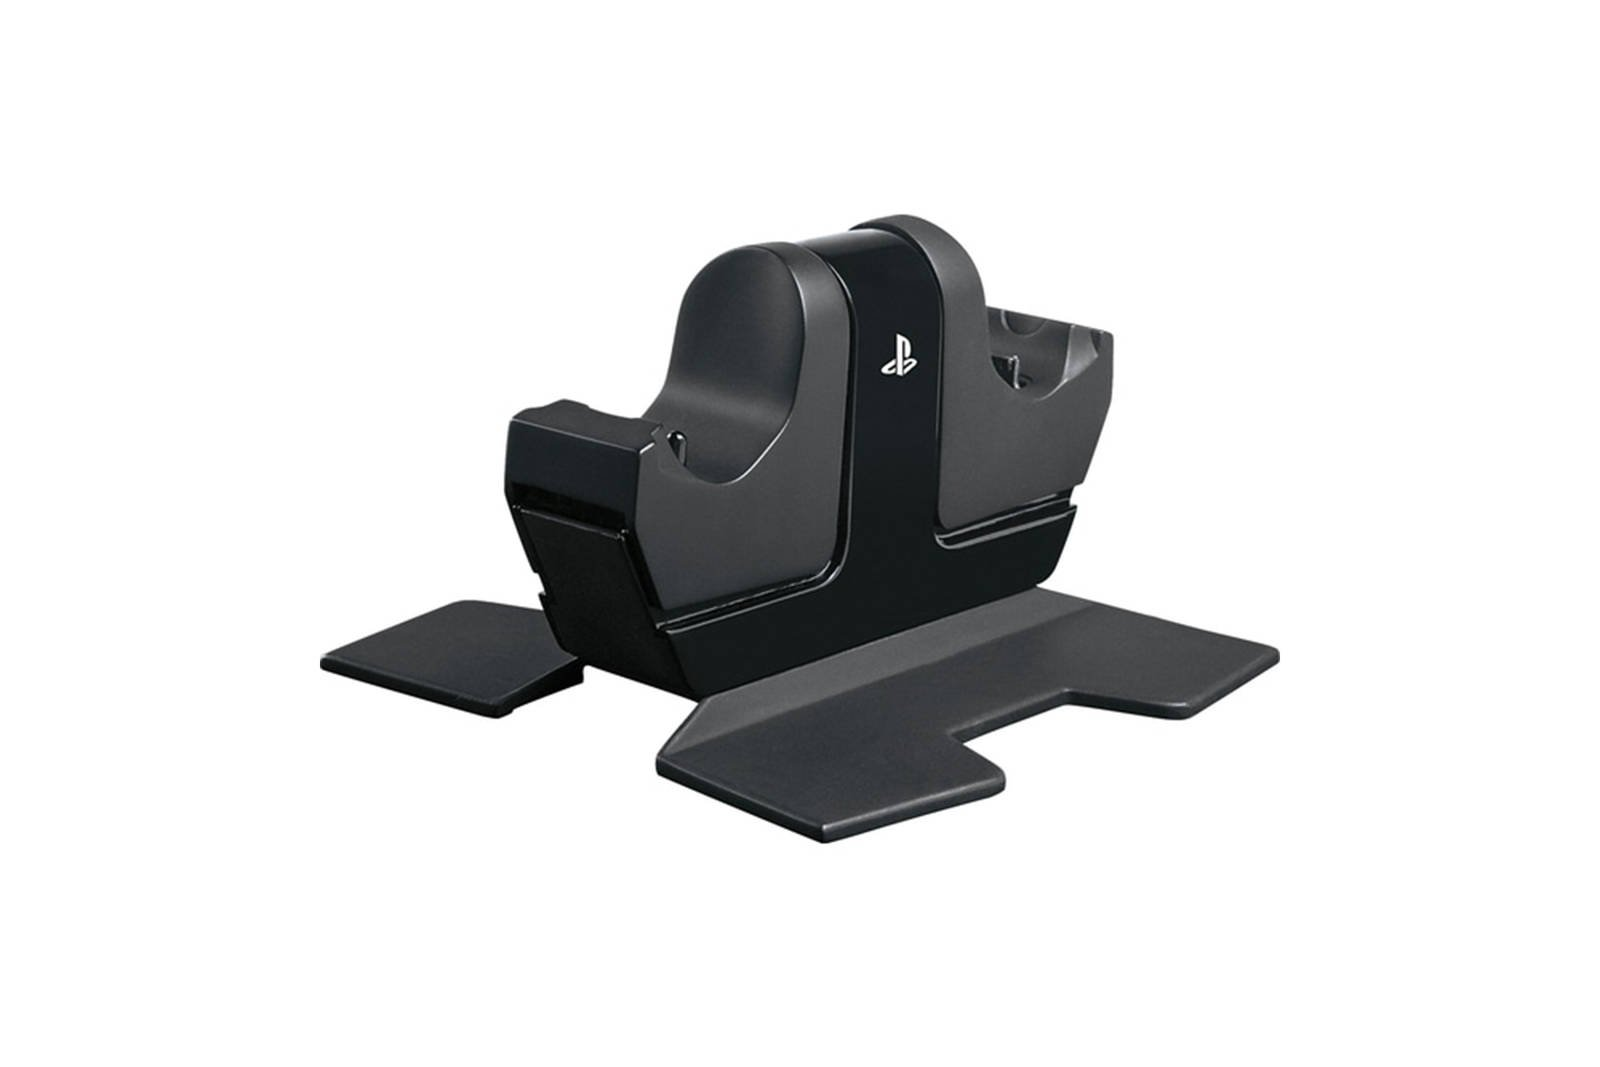 PowerA Dualshock 4 Wireless controllers Charging Station for PS4